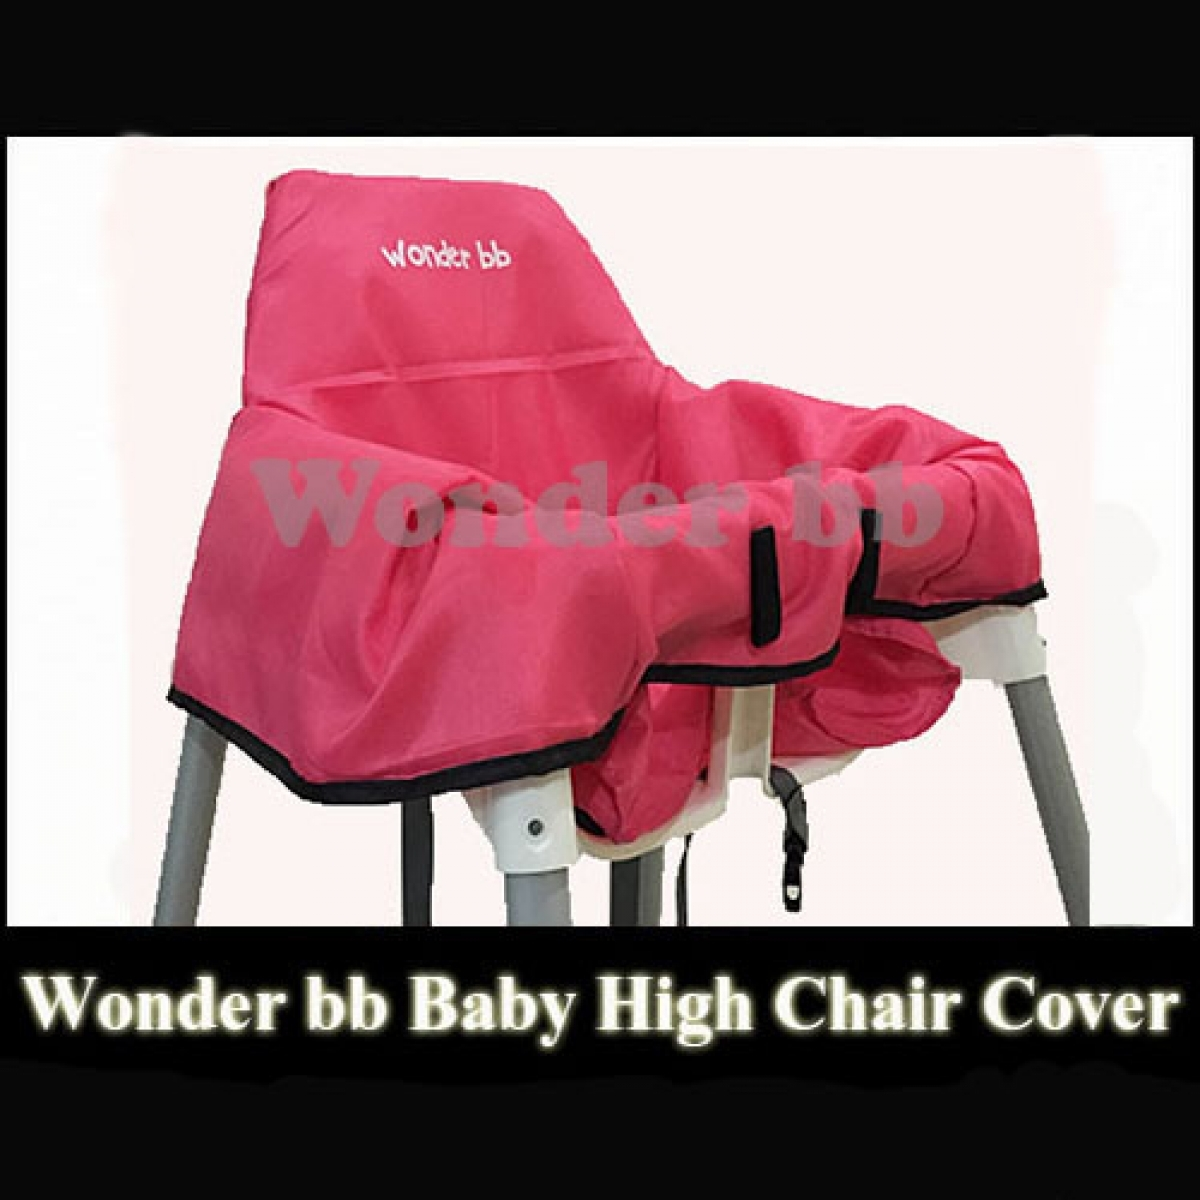 wonder bb baby high chair cover. Black Bedroom Furniture Sets. Home Design Ideas